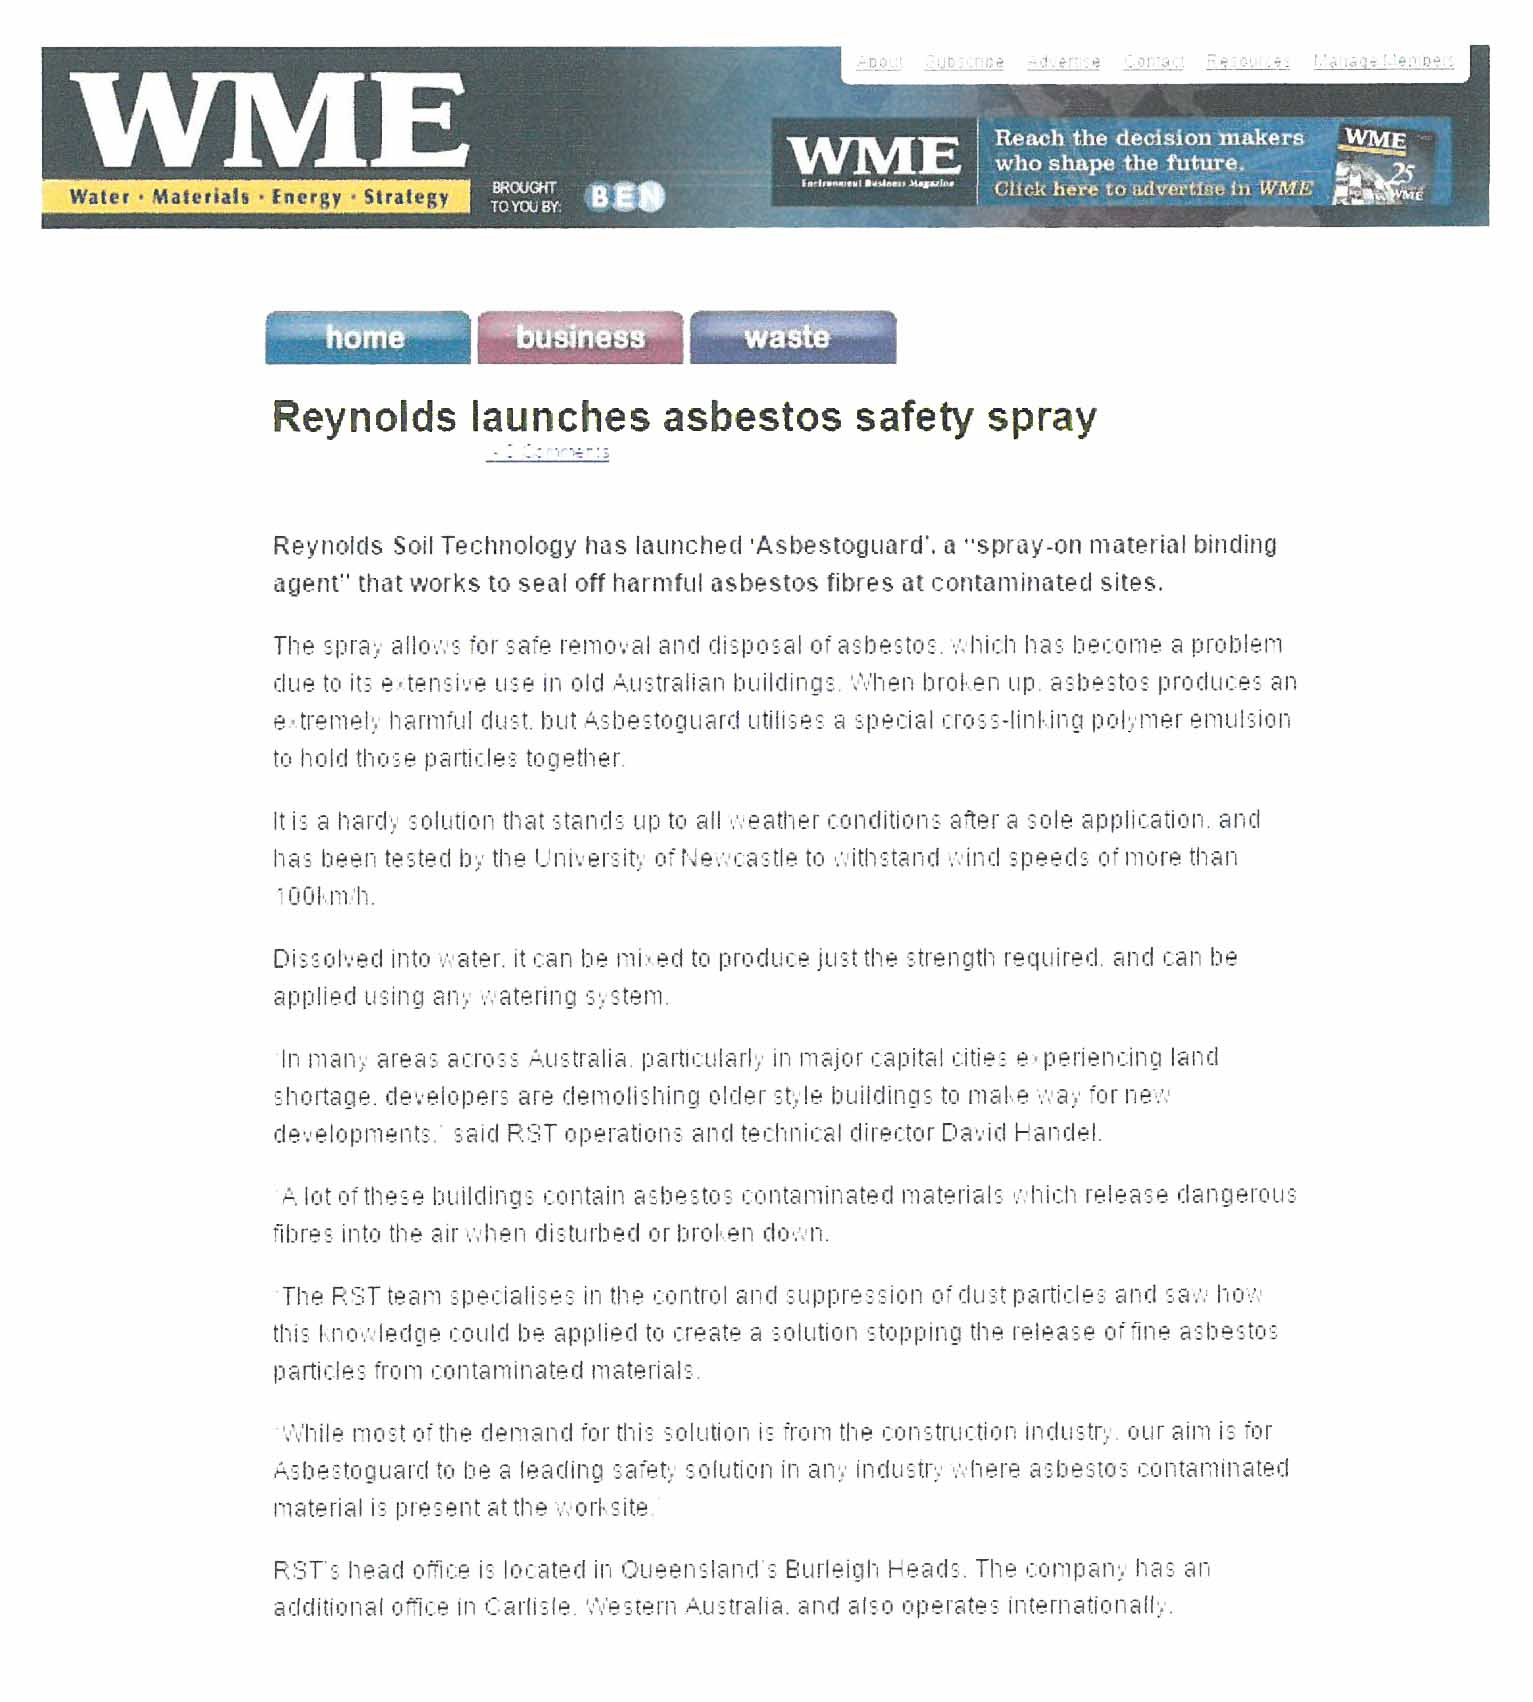 Reynolds Launches Asbestos Safety Spray